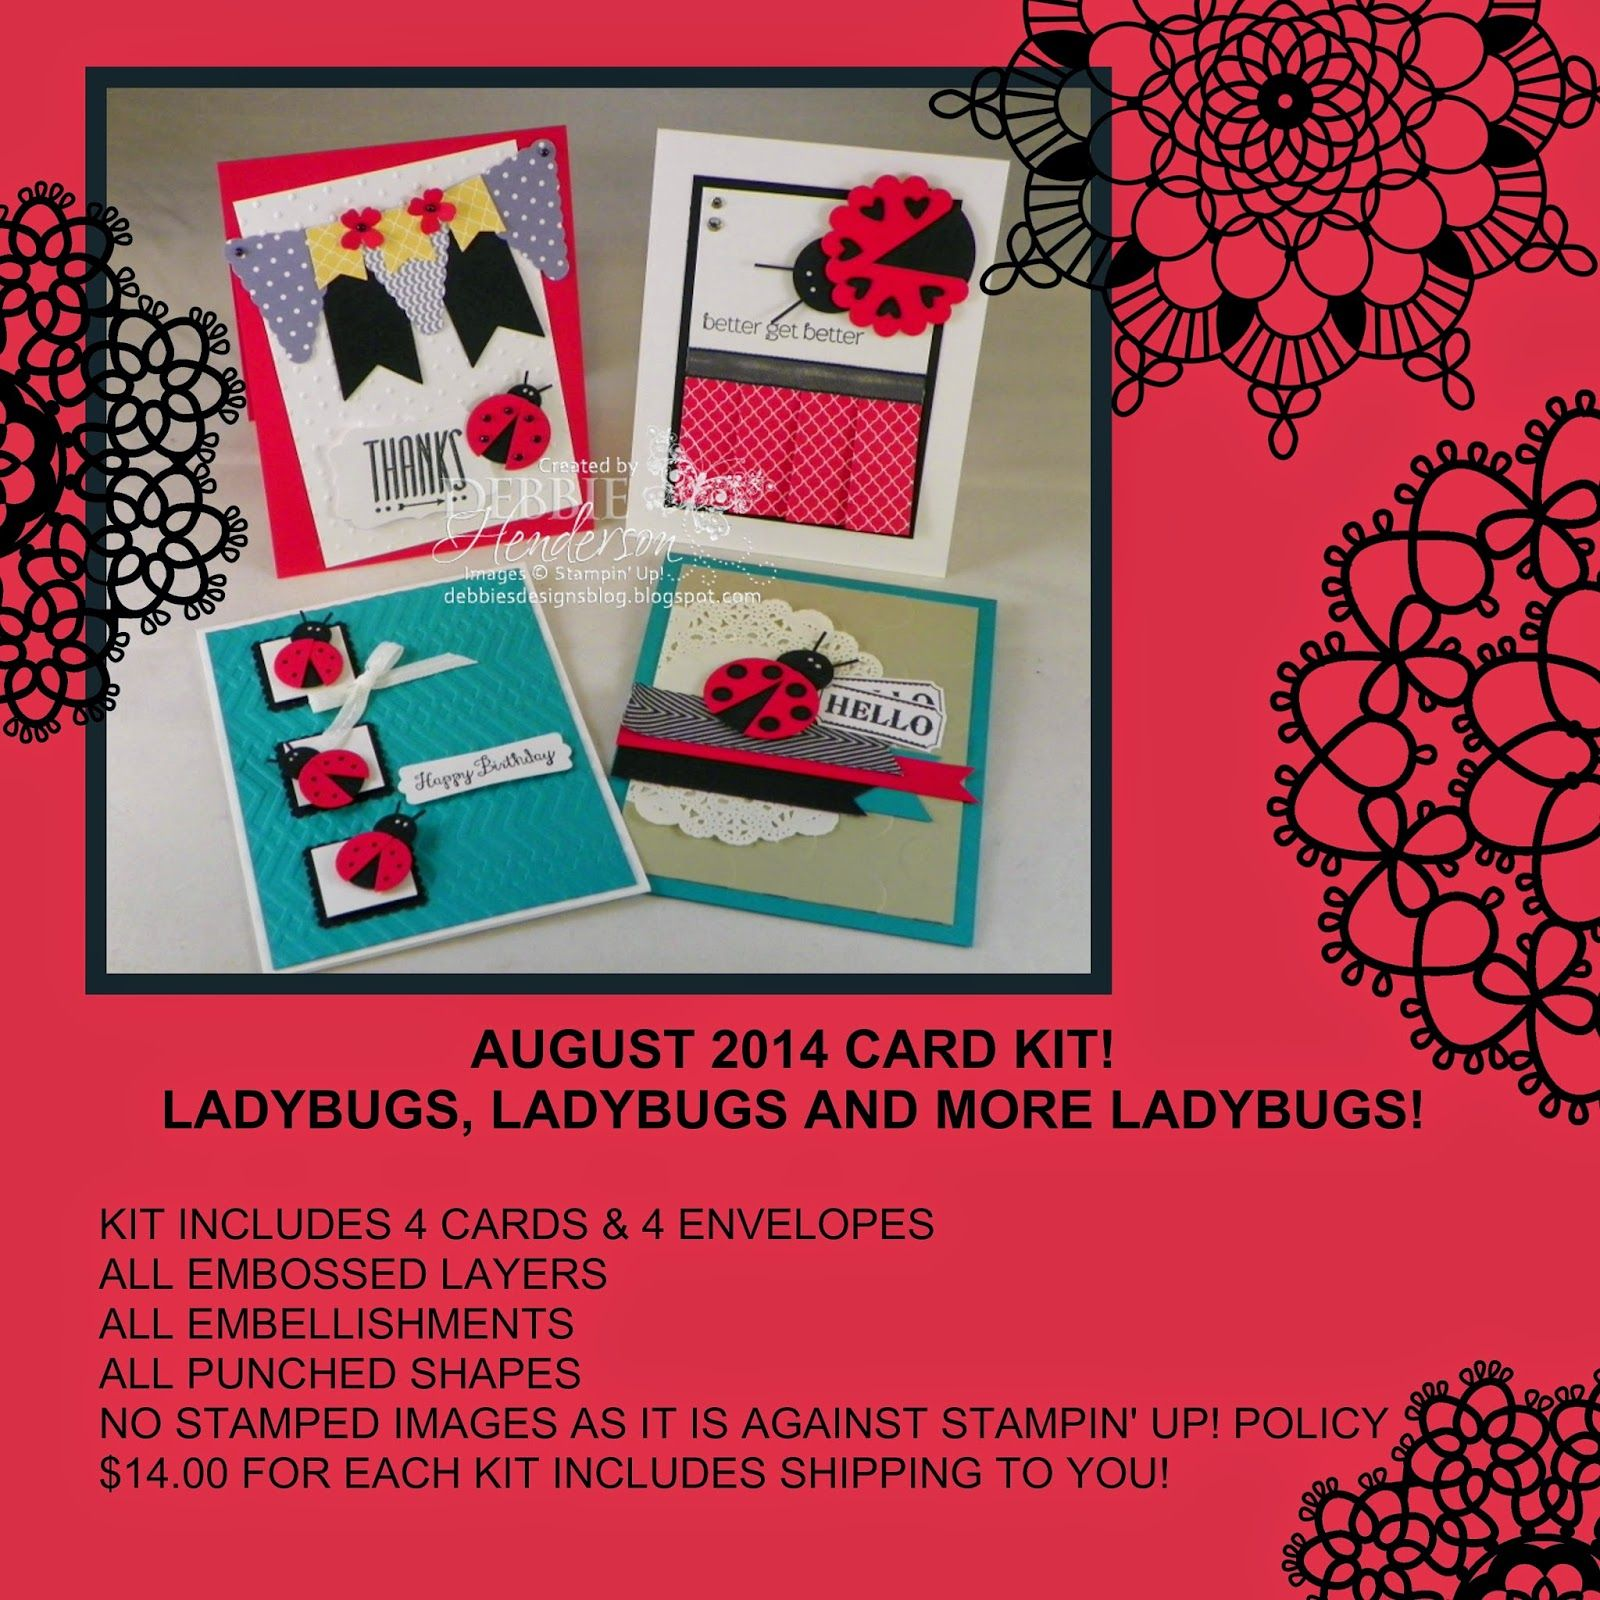 August card kit for sale on my blog. It's all about Ladybugs this month! Debbie Henderson, Debbie's Designs.